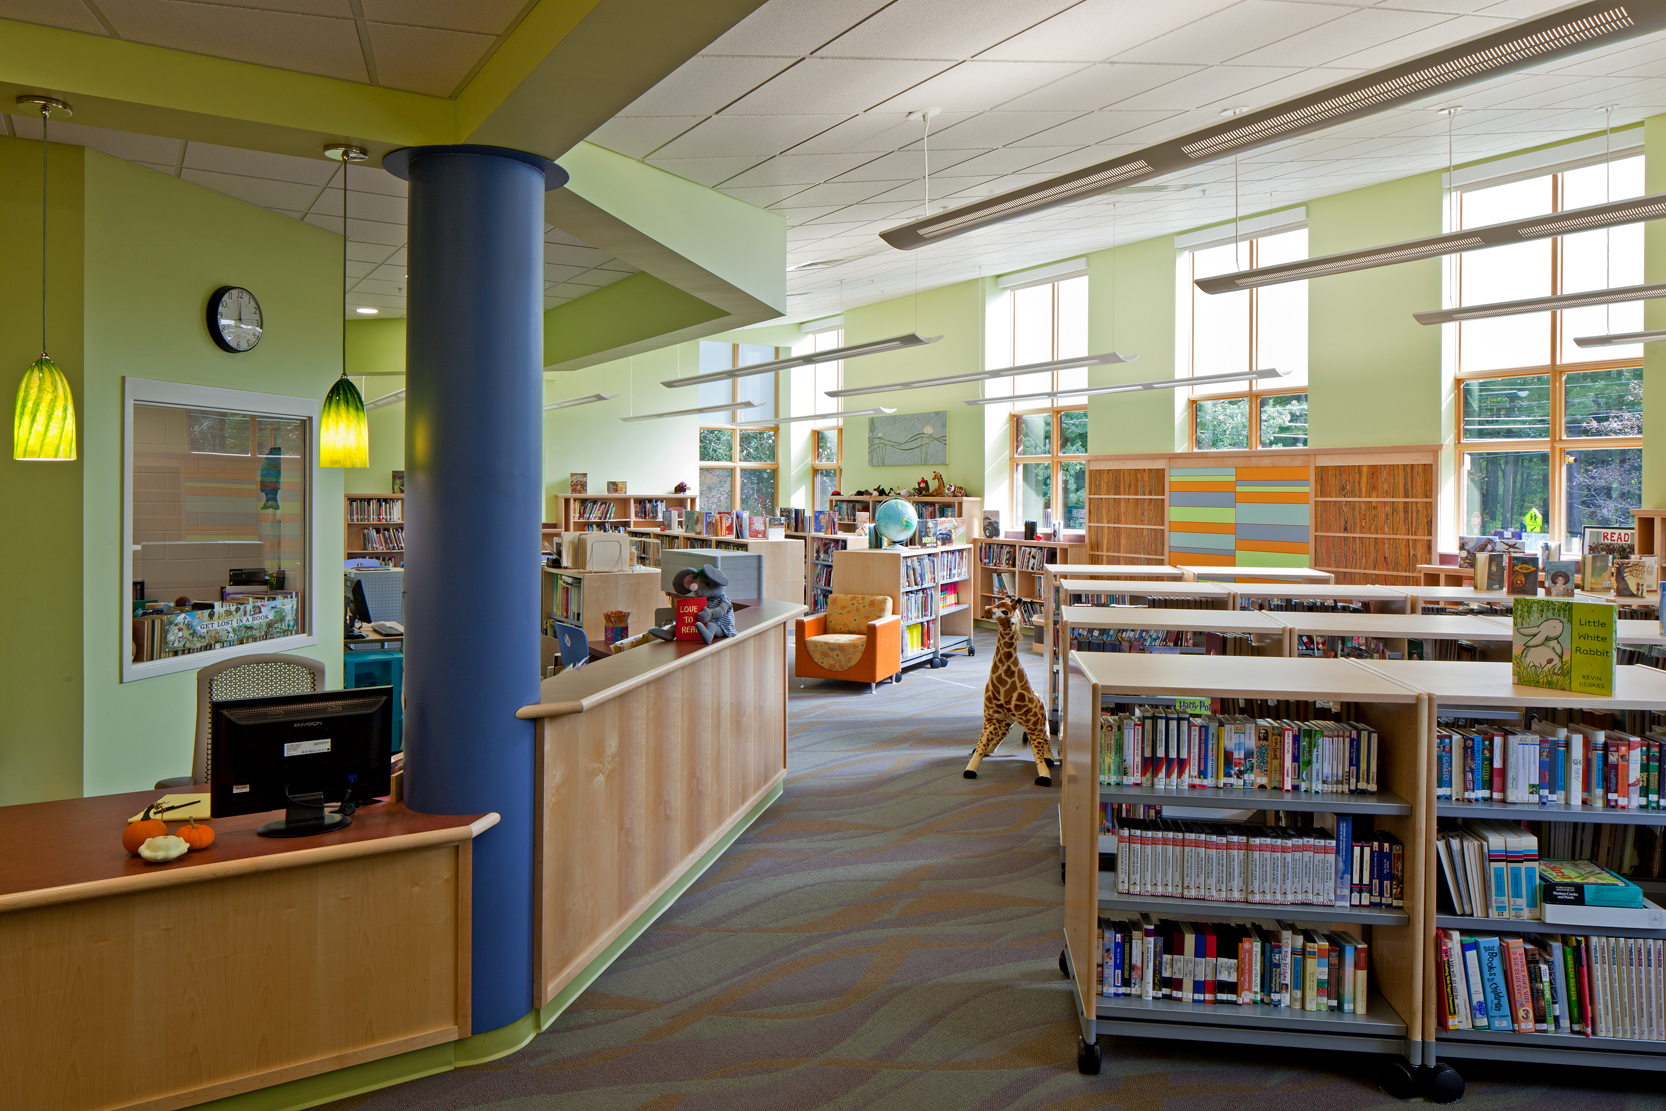 The library contains a built-in story and presentation area, a small classroom, and a variety of seating.